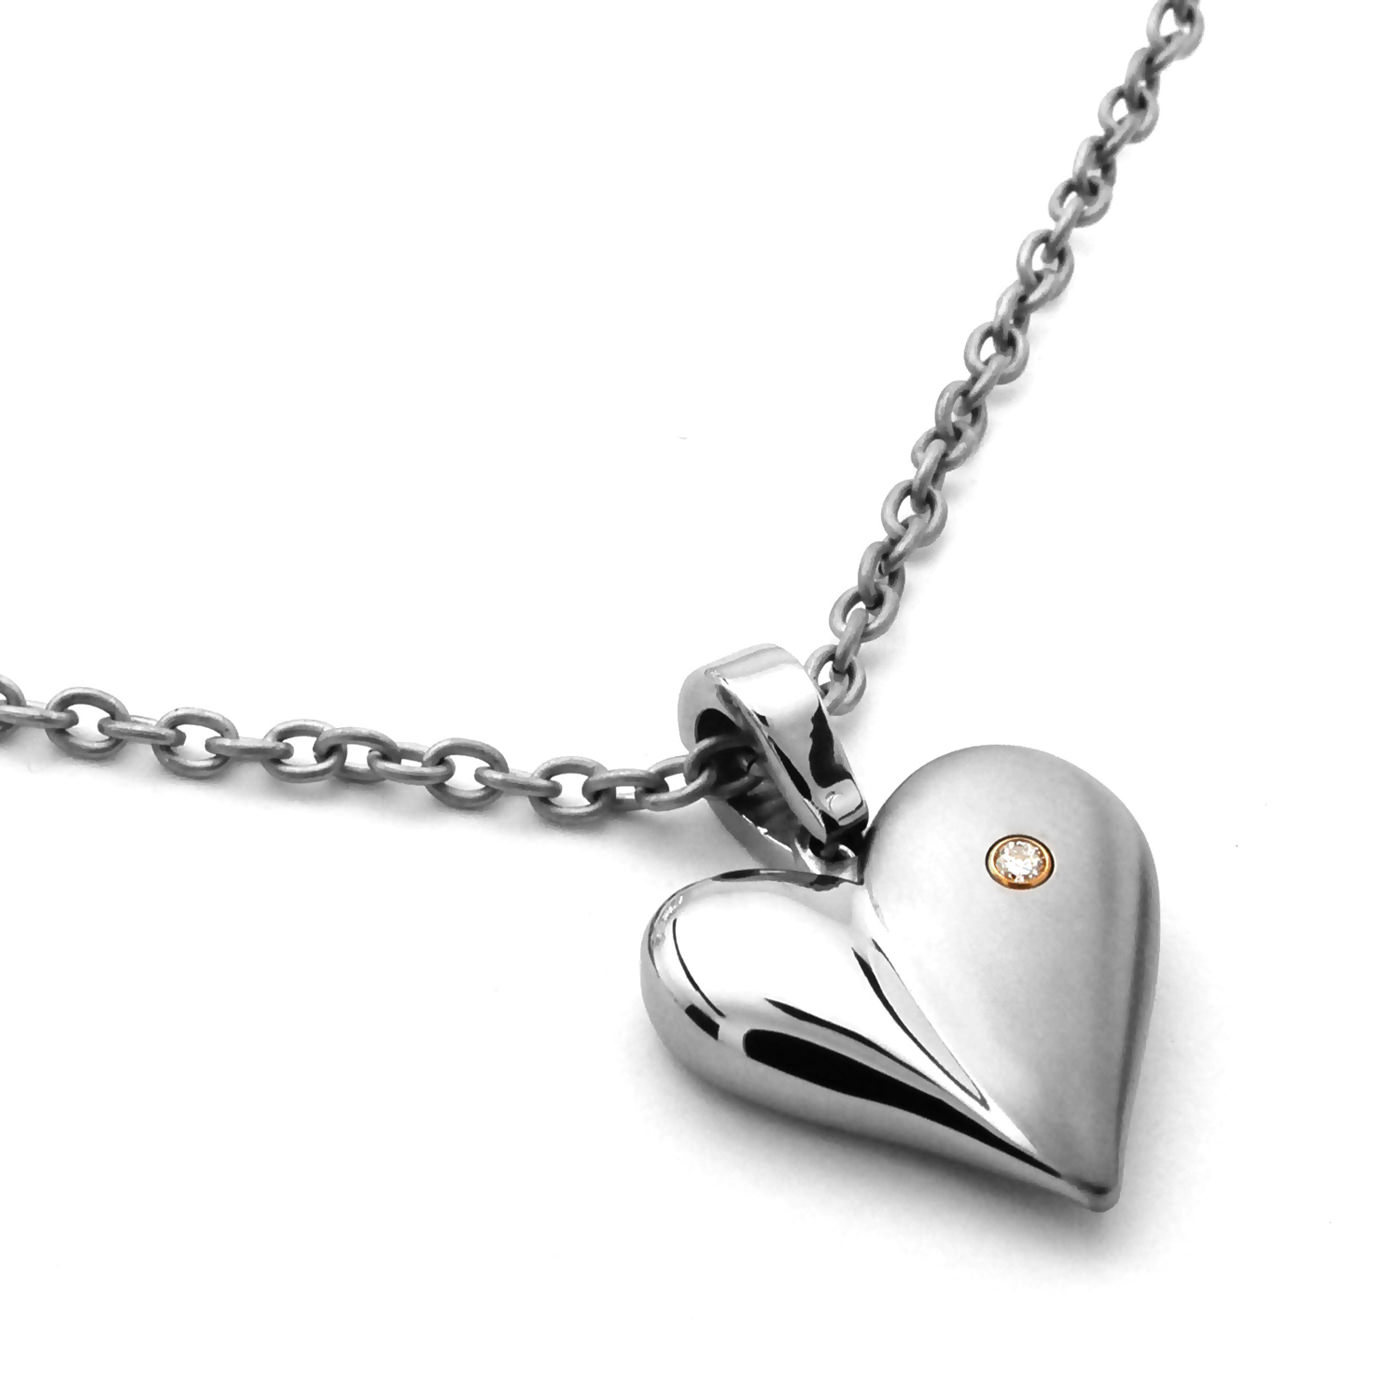 jewelry necklaces jewellery product size necklace contempo heart os